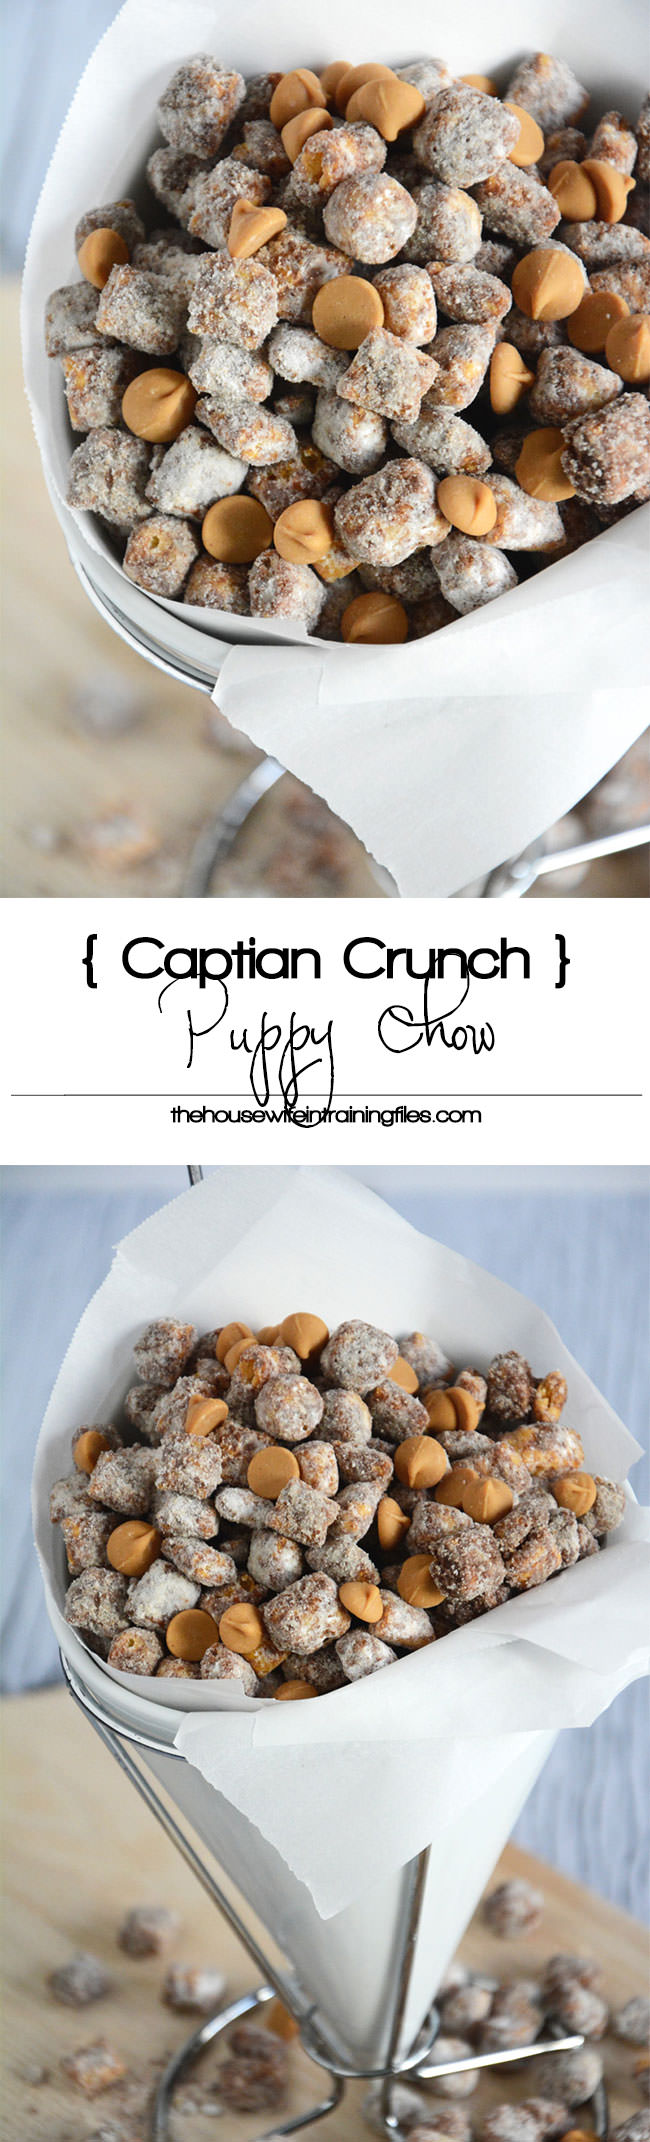 Peanut Butter Puppy Chow gets a Captain Crunch makeover with a childhood classic cereal!